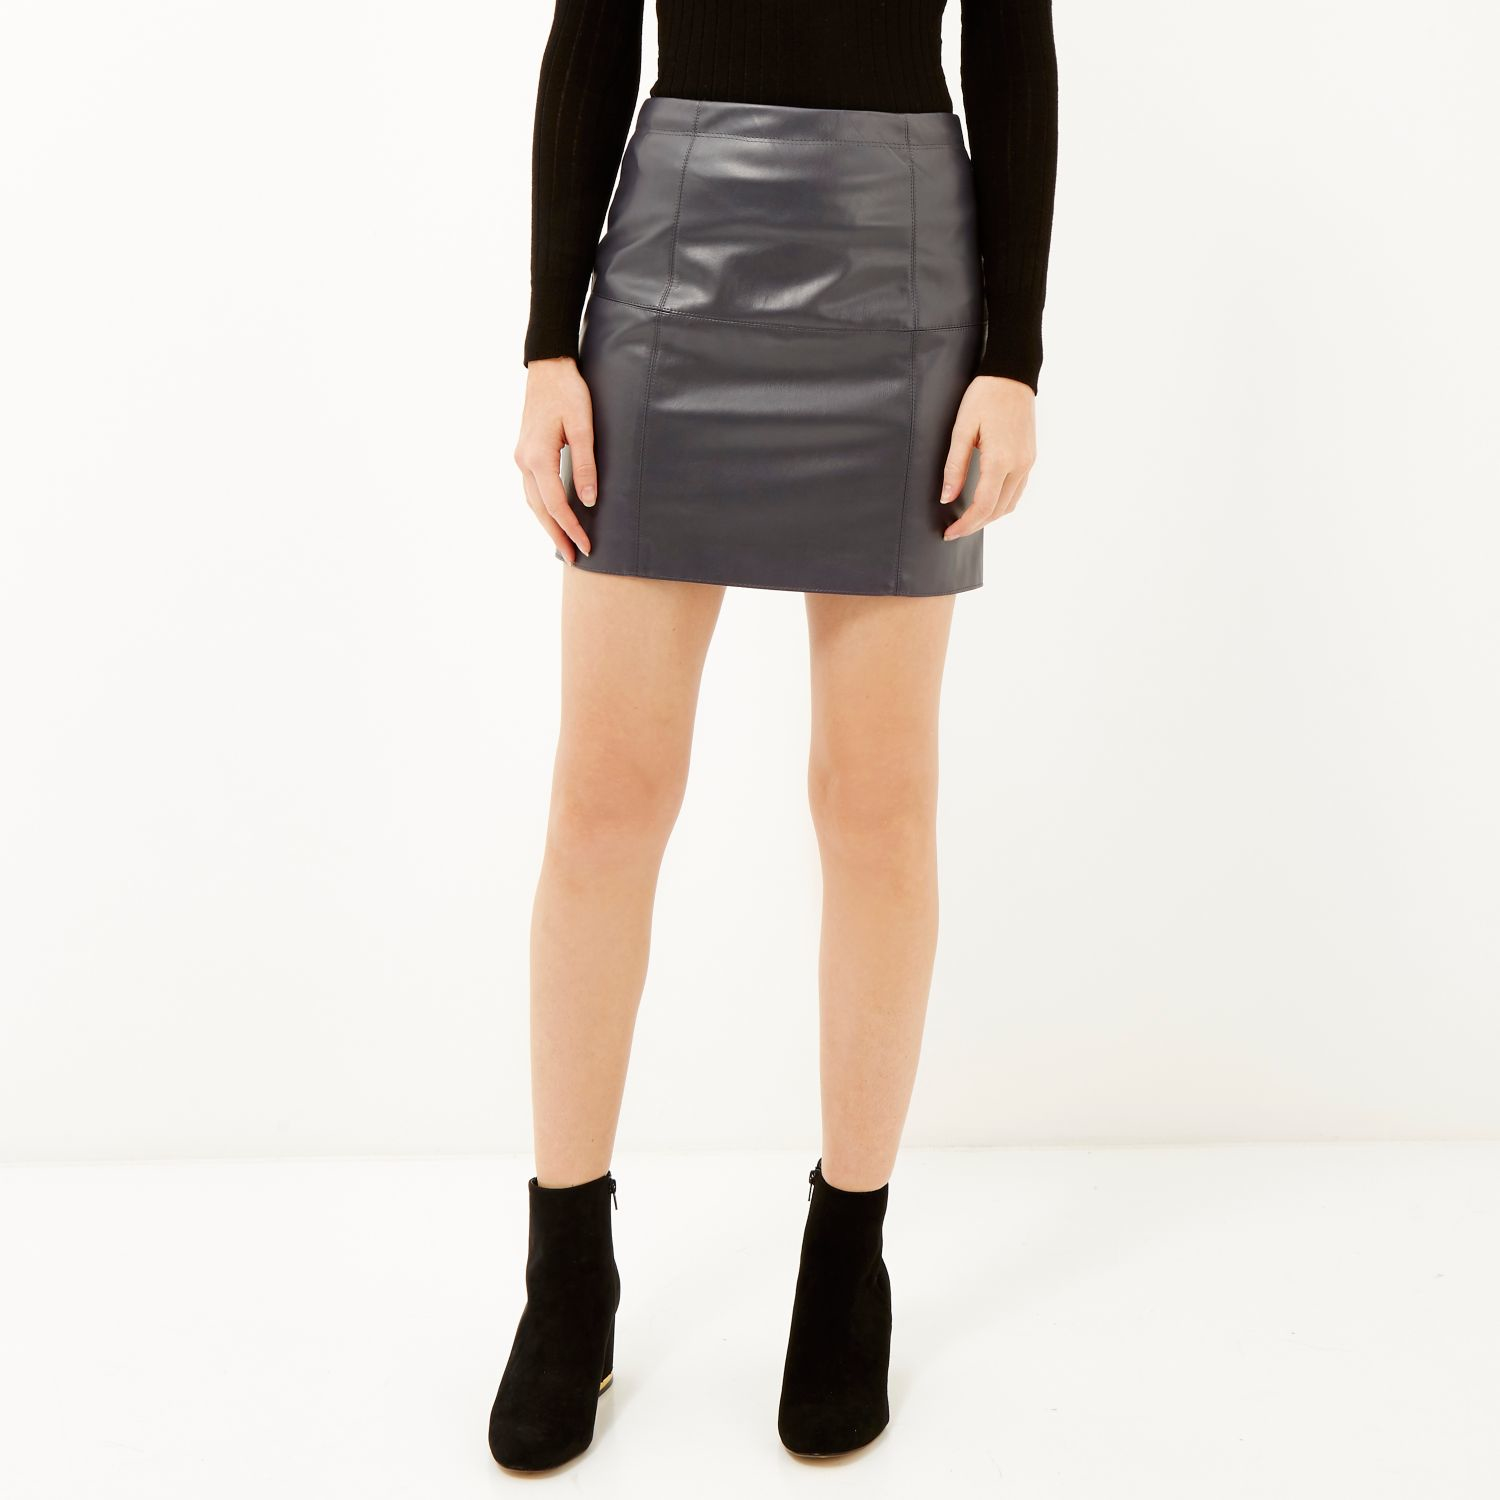 River island Dark Grey Leather-look Mini Skirt in Black | Lyst